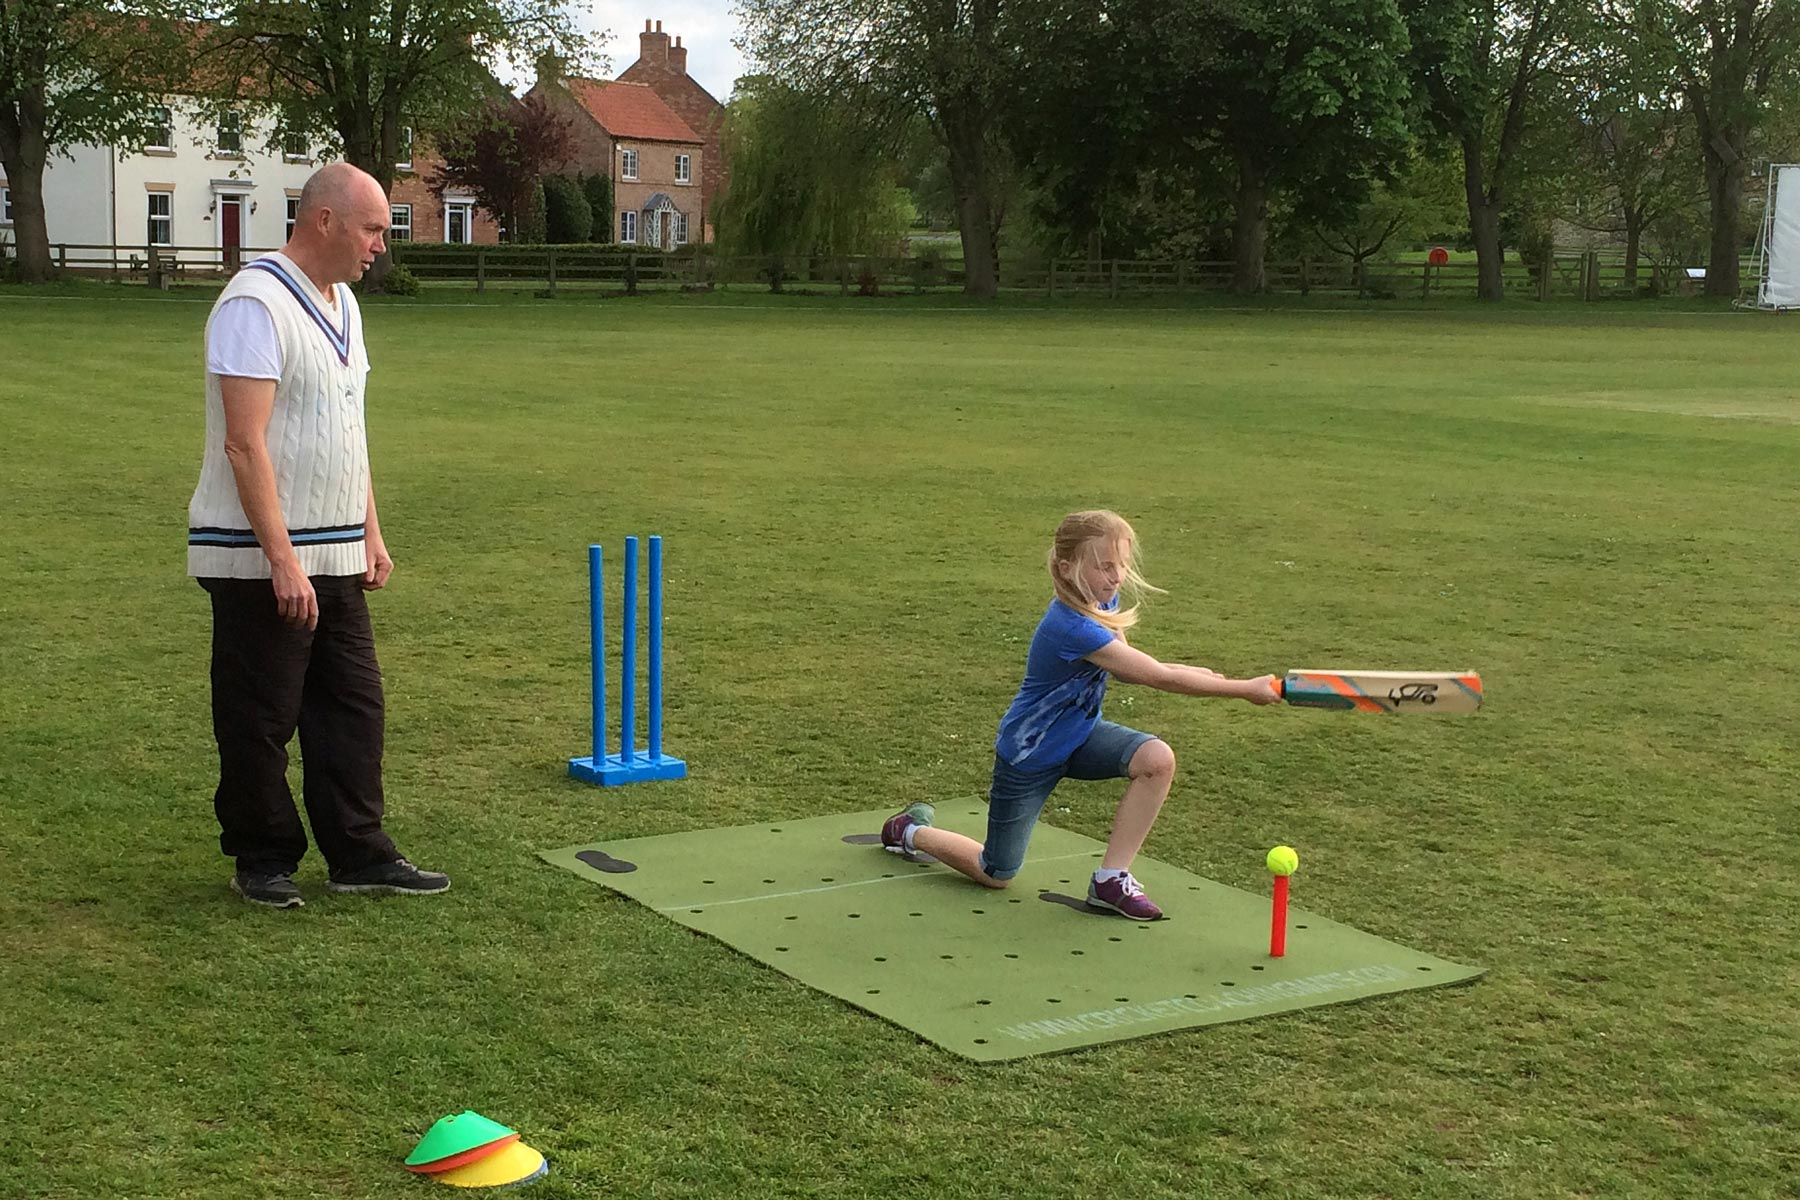 West Yorkshire girls training programme uses our Cricket Coaching Mat